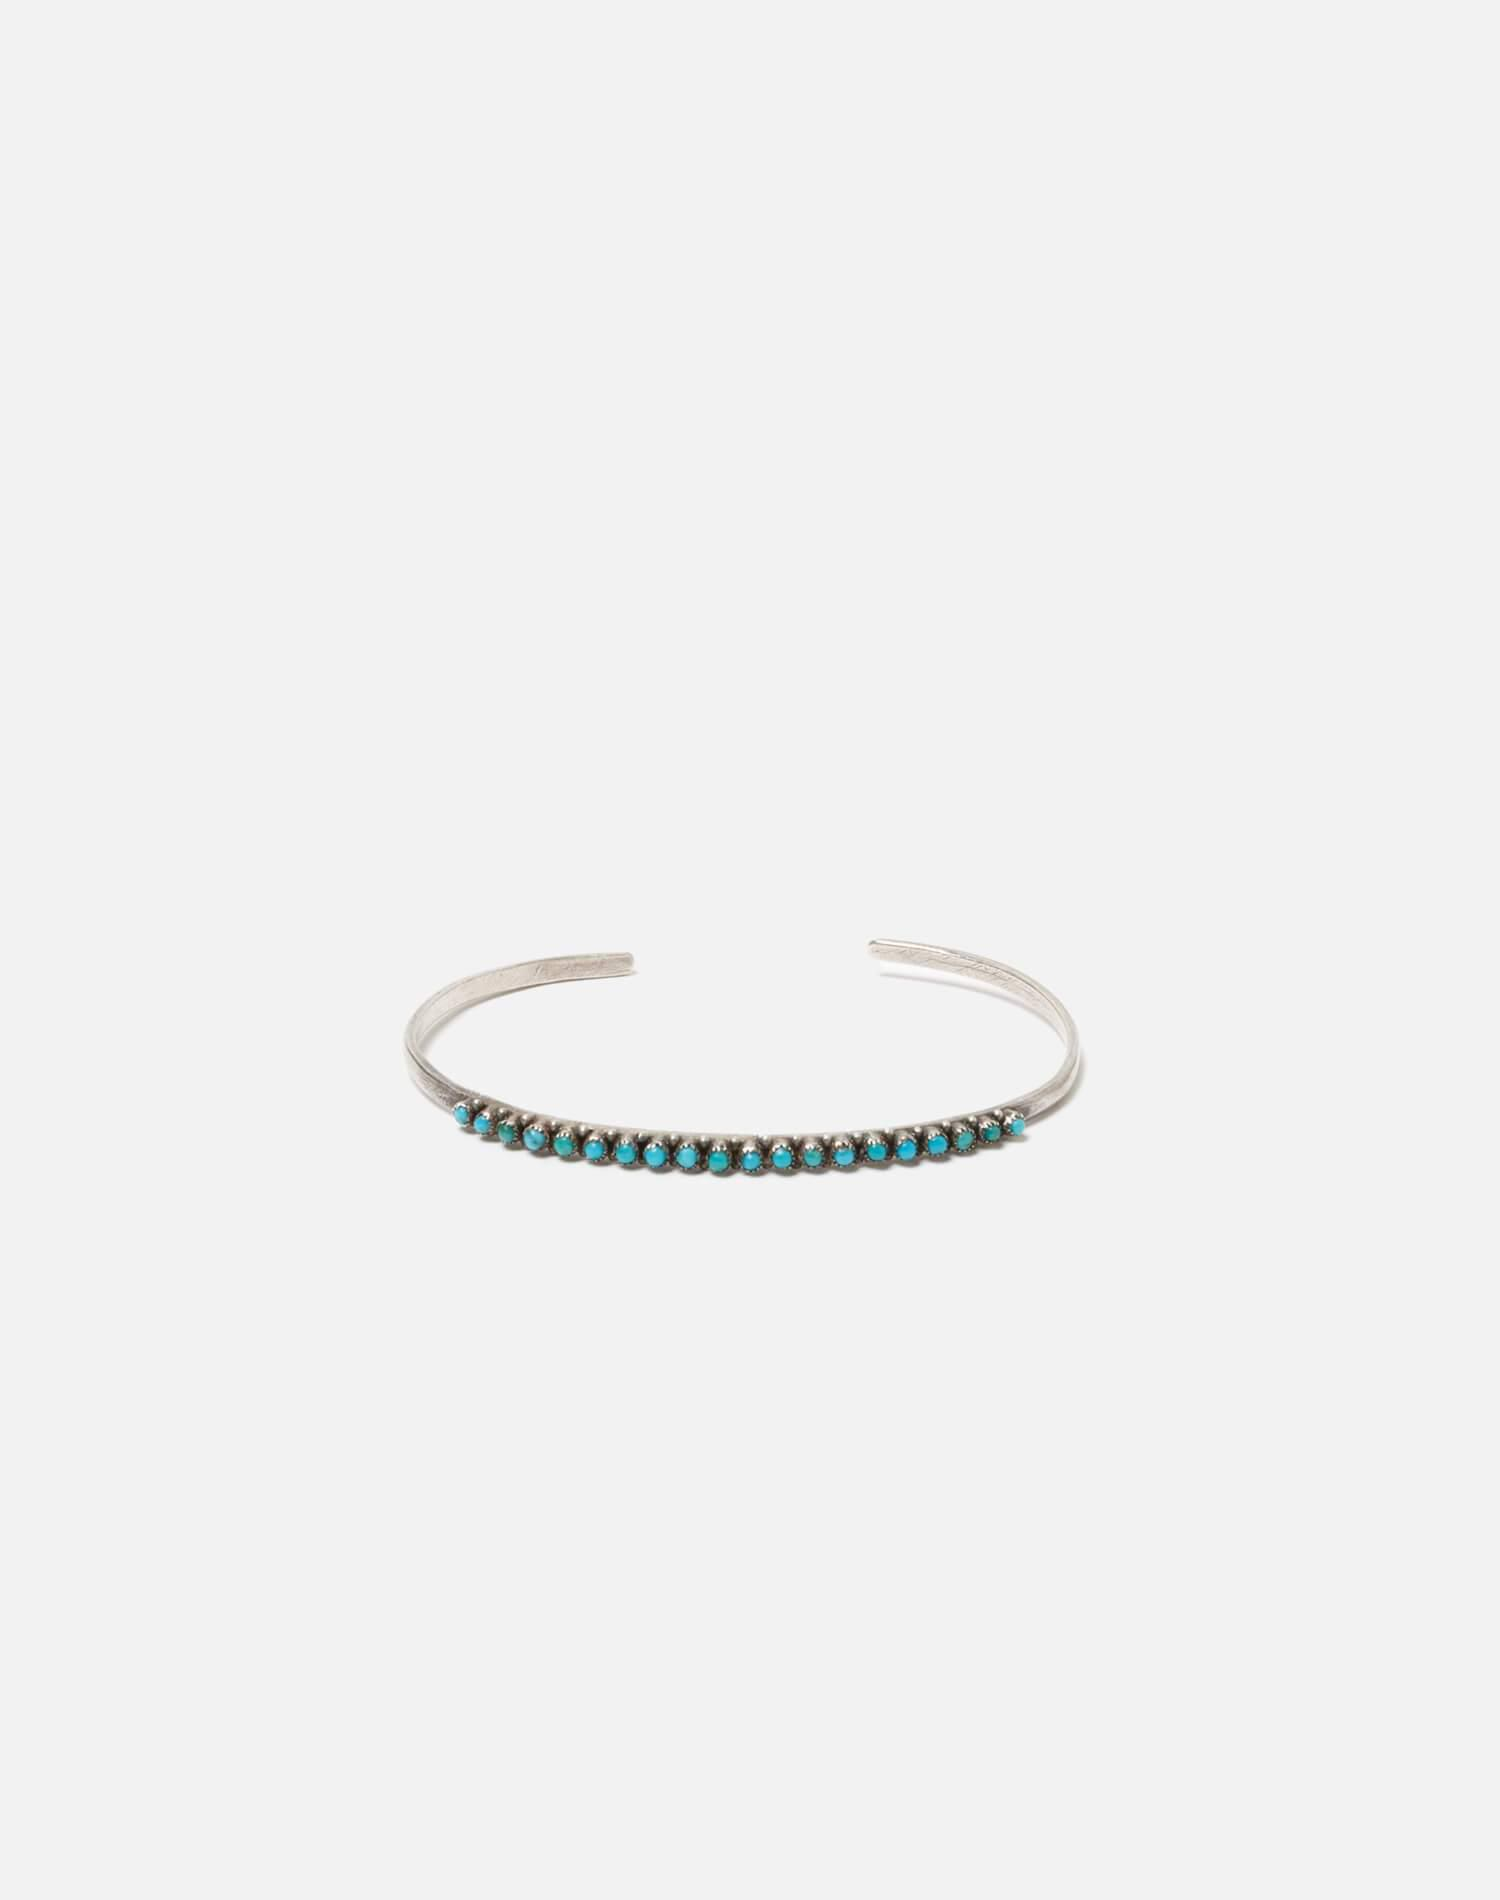 1940s Sterling Silver And Turquoise Zuni Snake Eyes Bracelet - #87